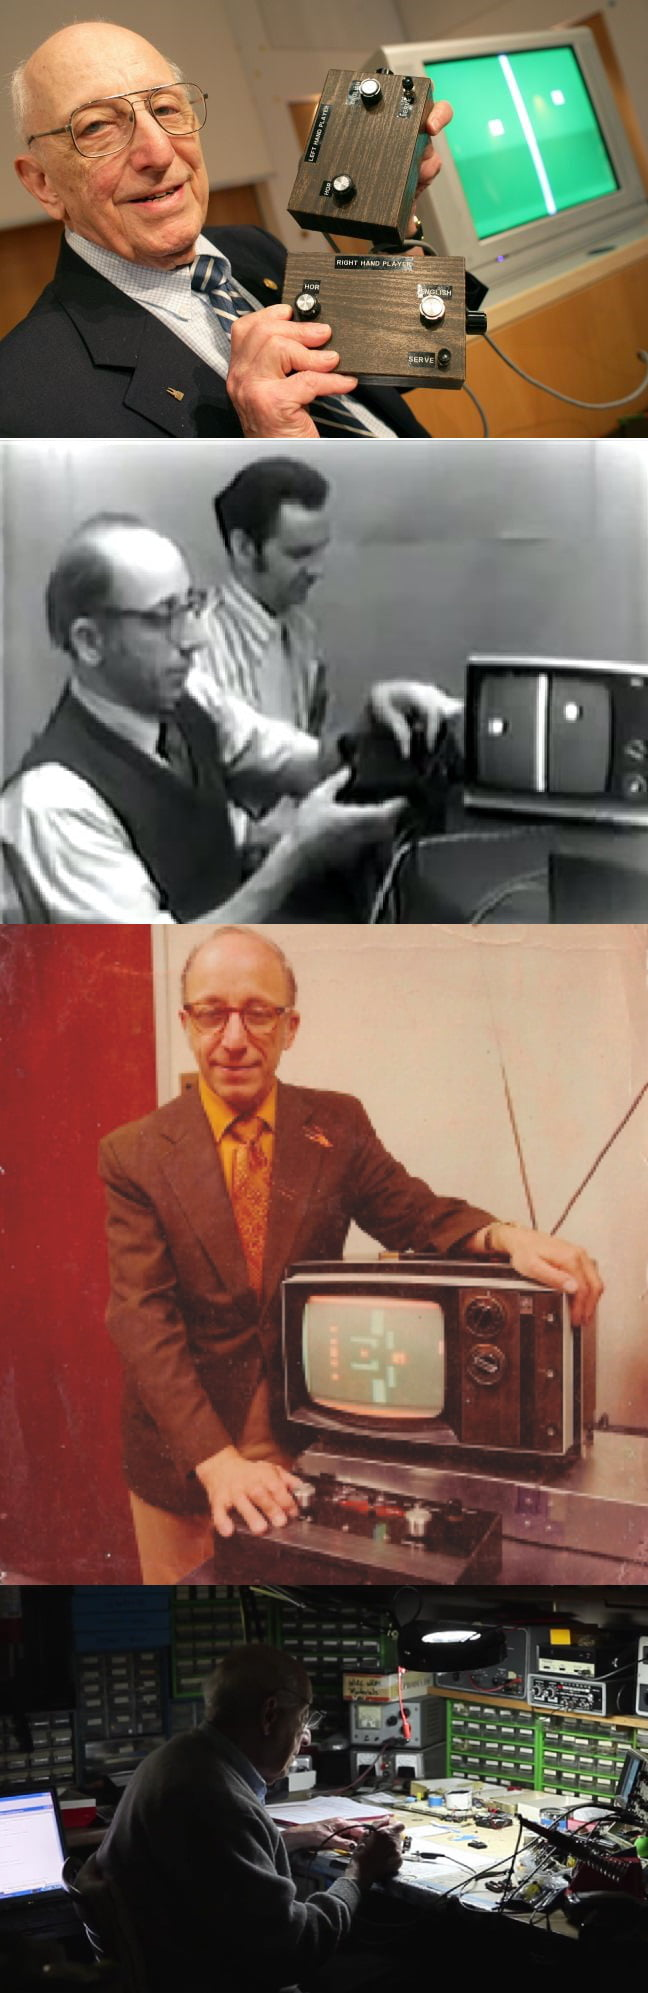 Ralph Baer, the man who created the first video game, died at the age of 92. Thank you for everything, Sir!